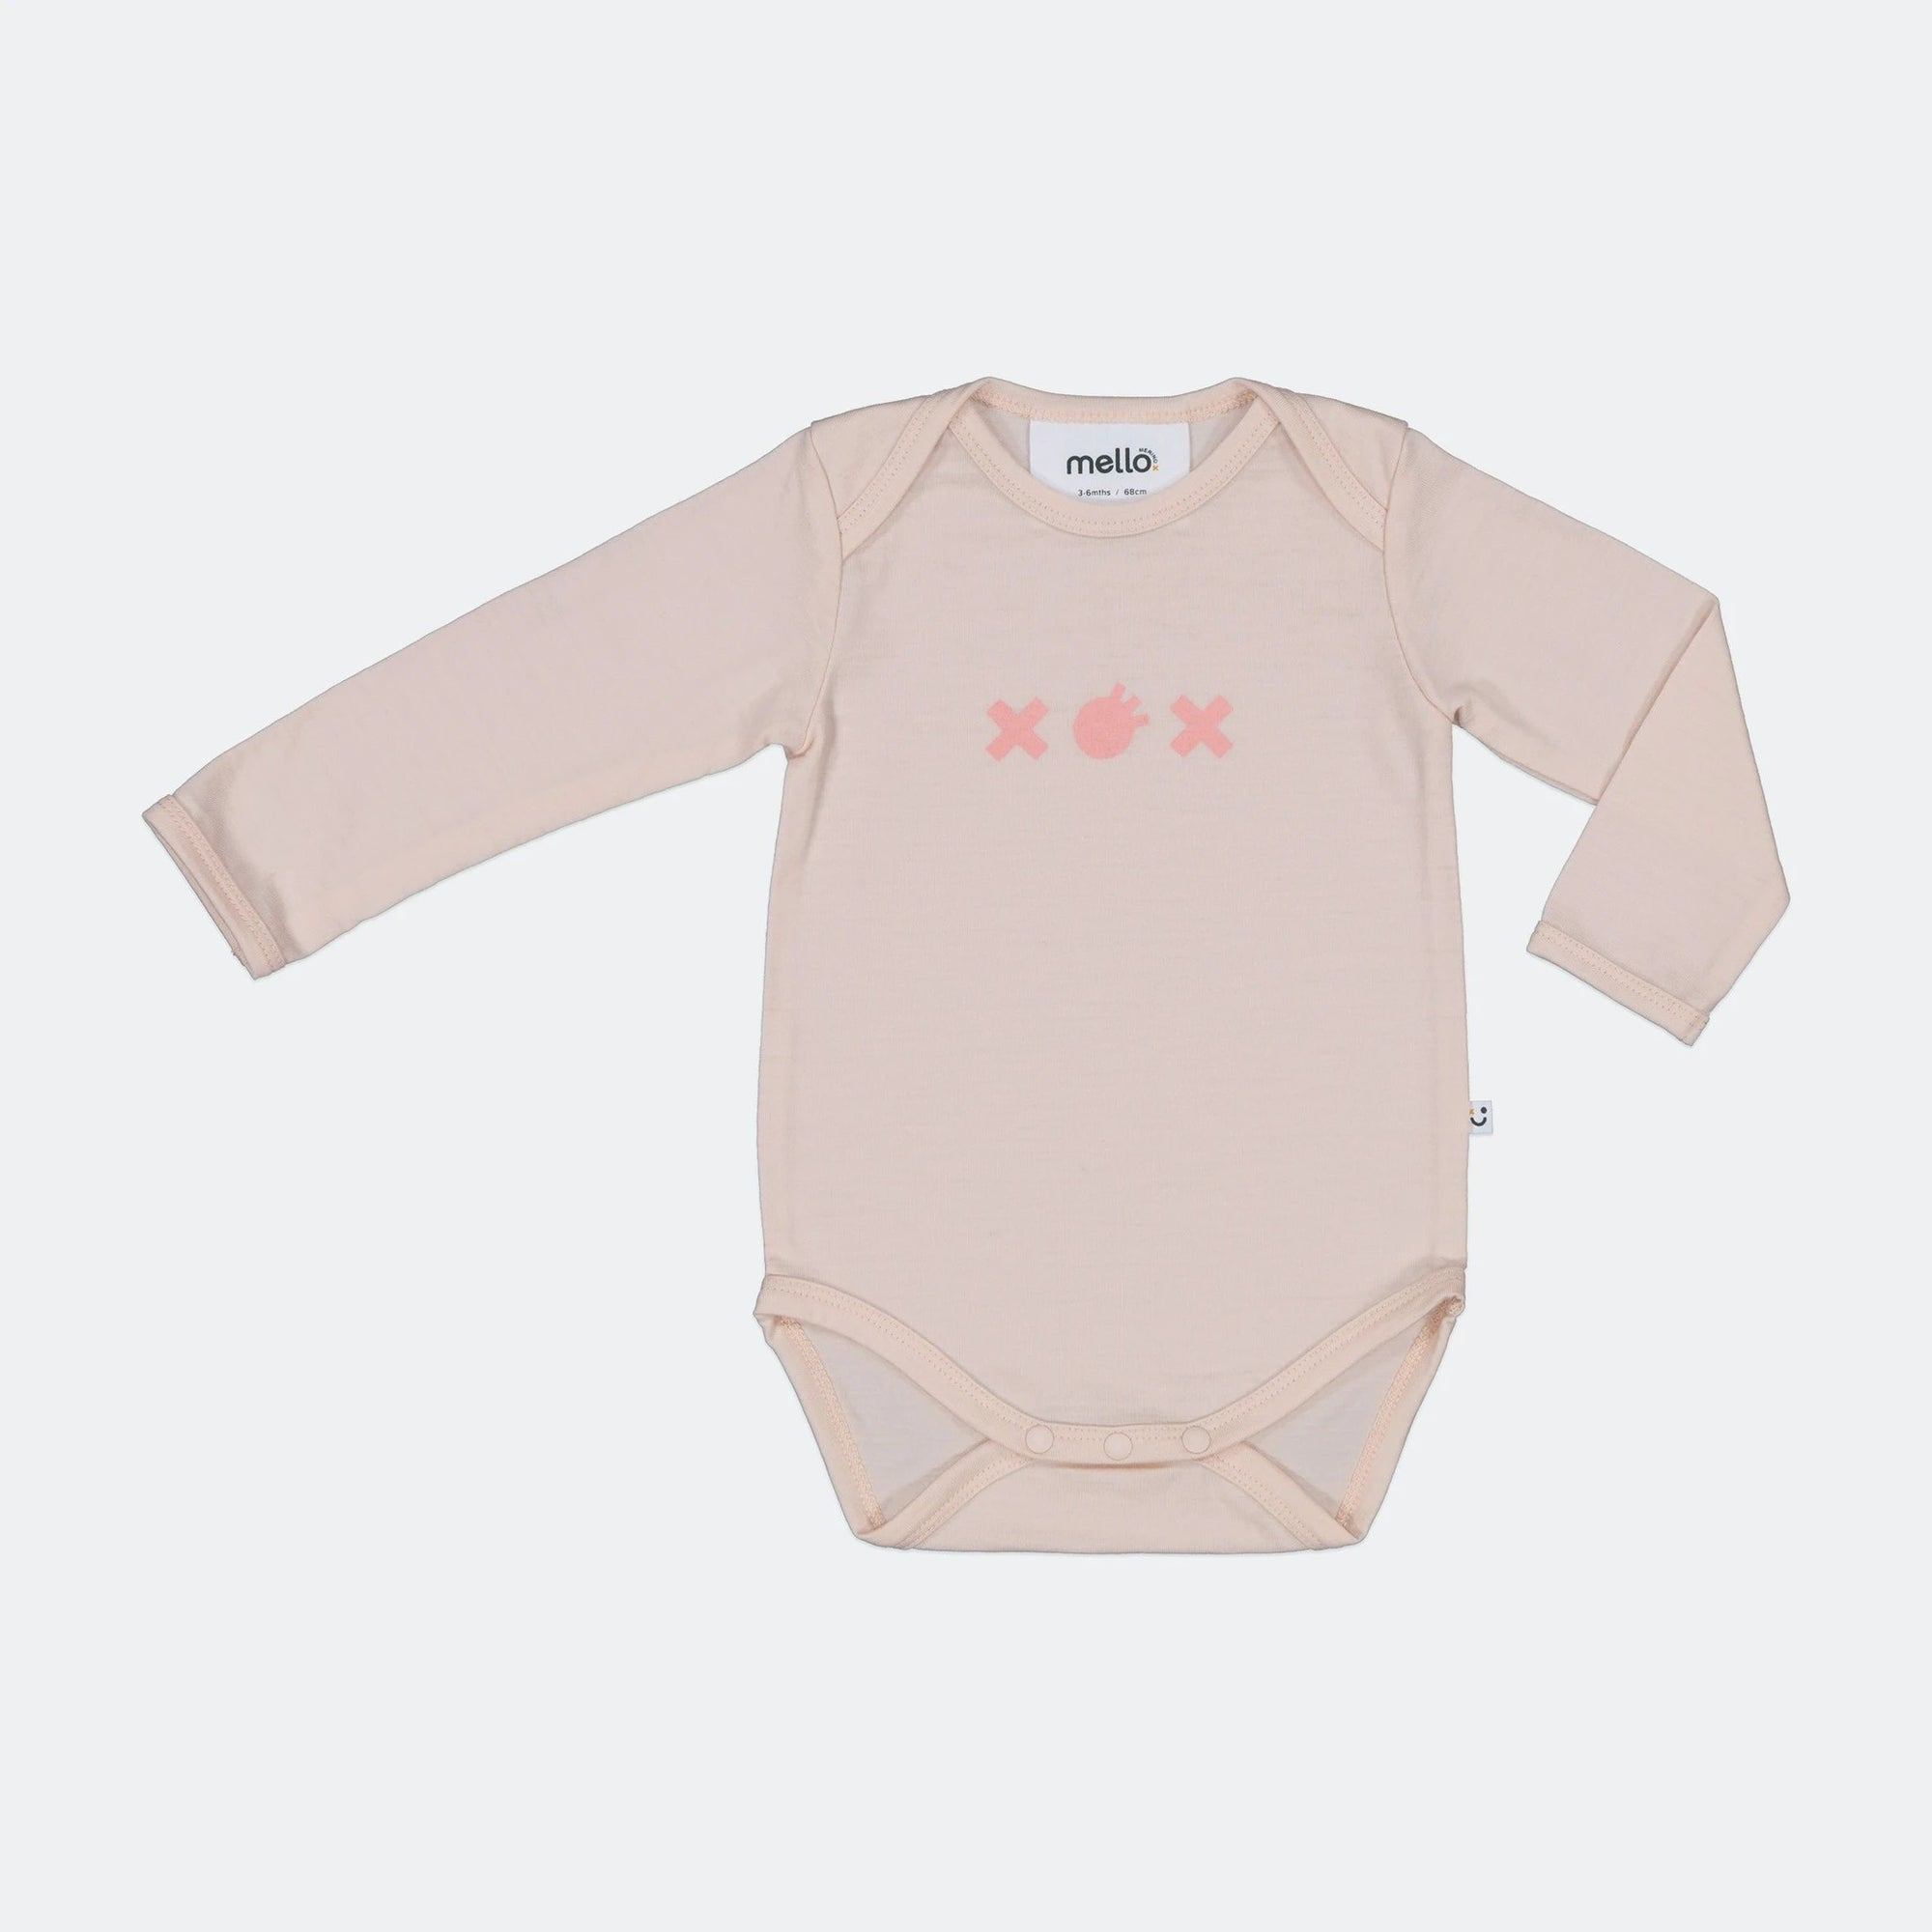 Mello Merino Peach Bodysuit